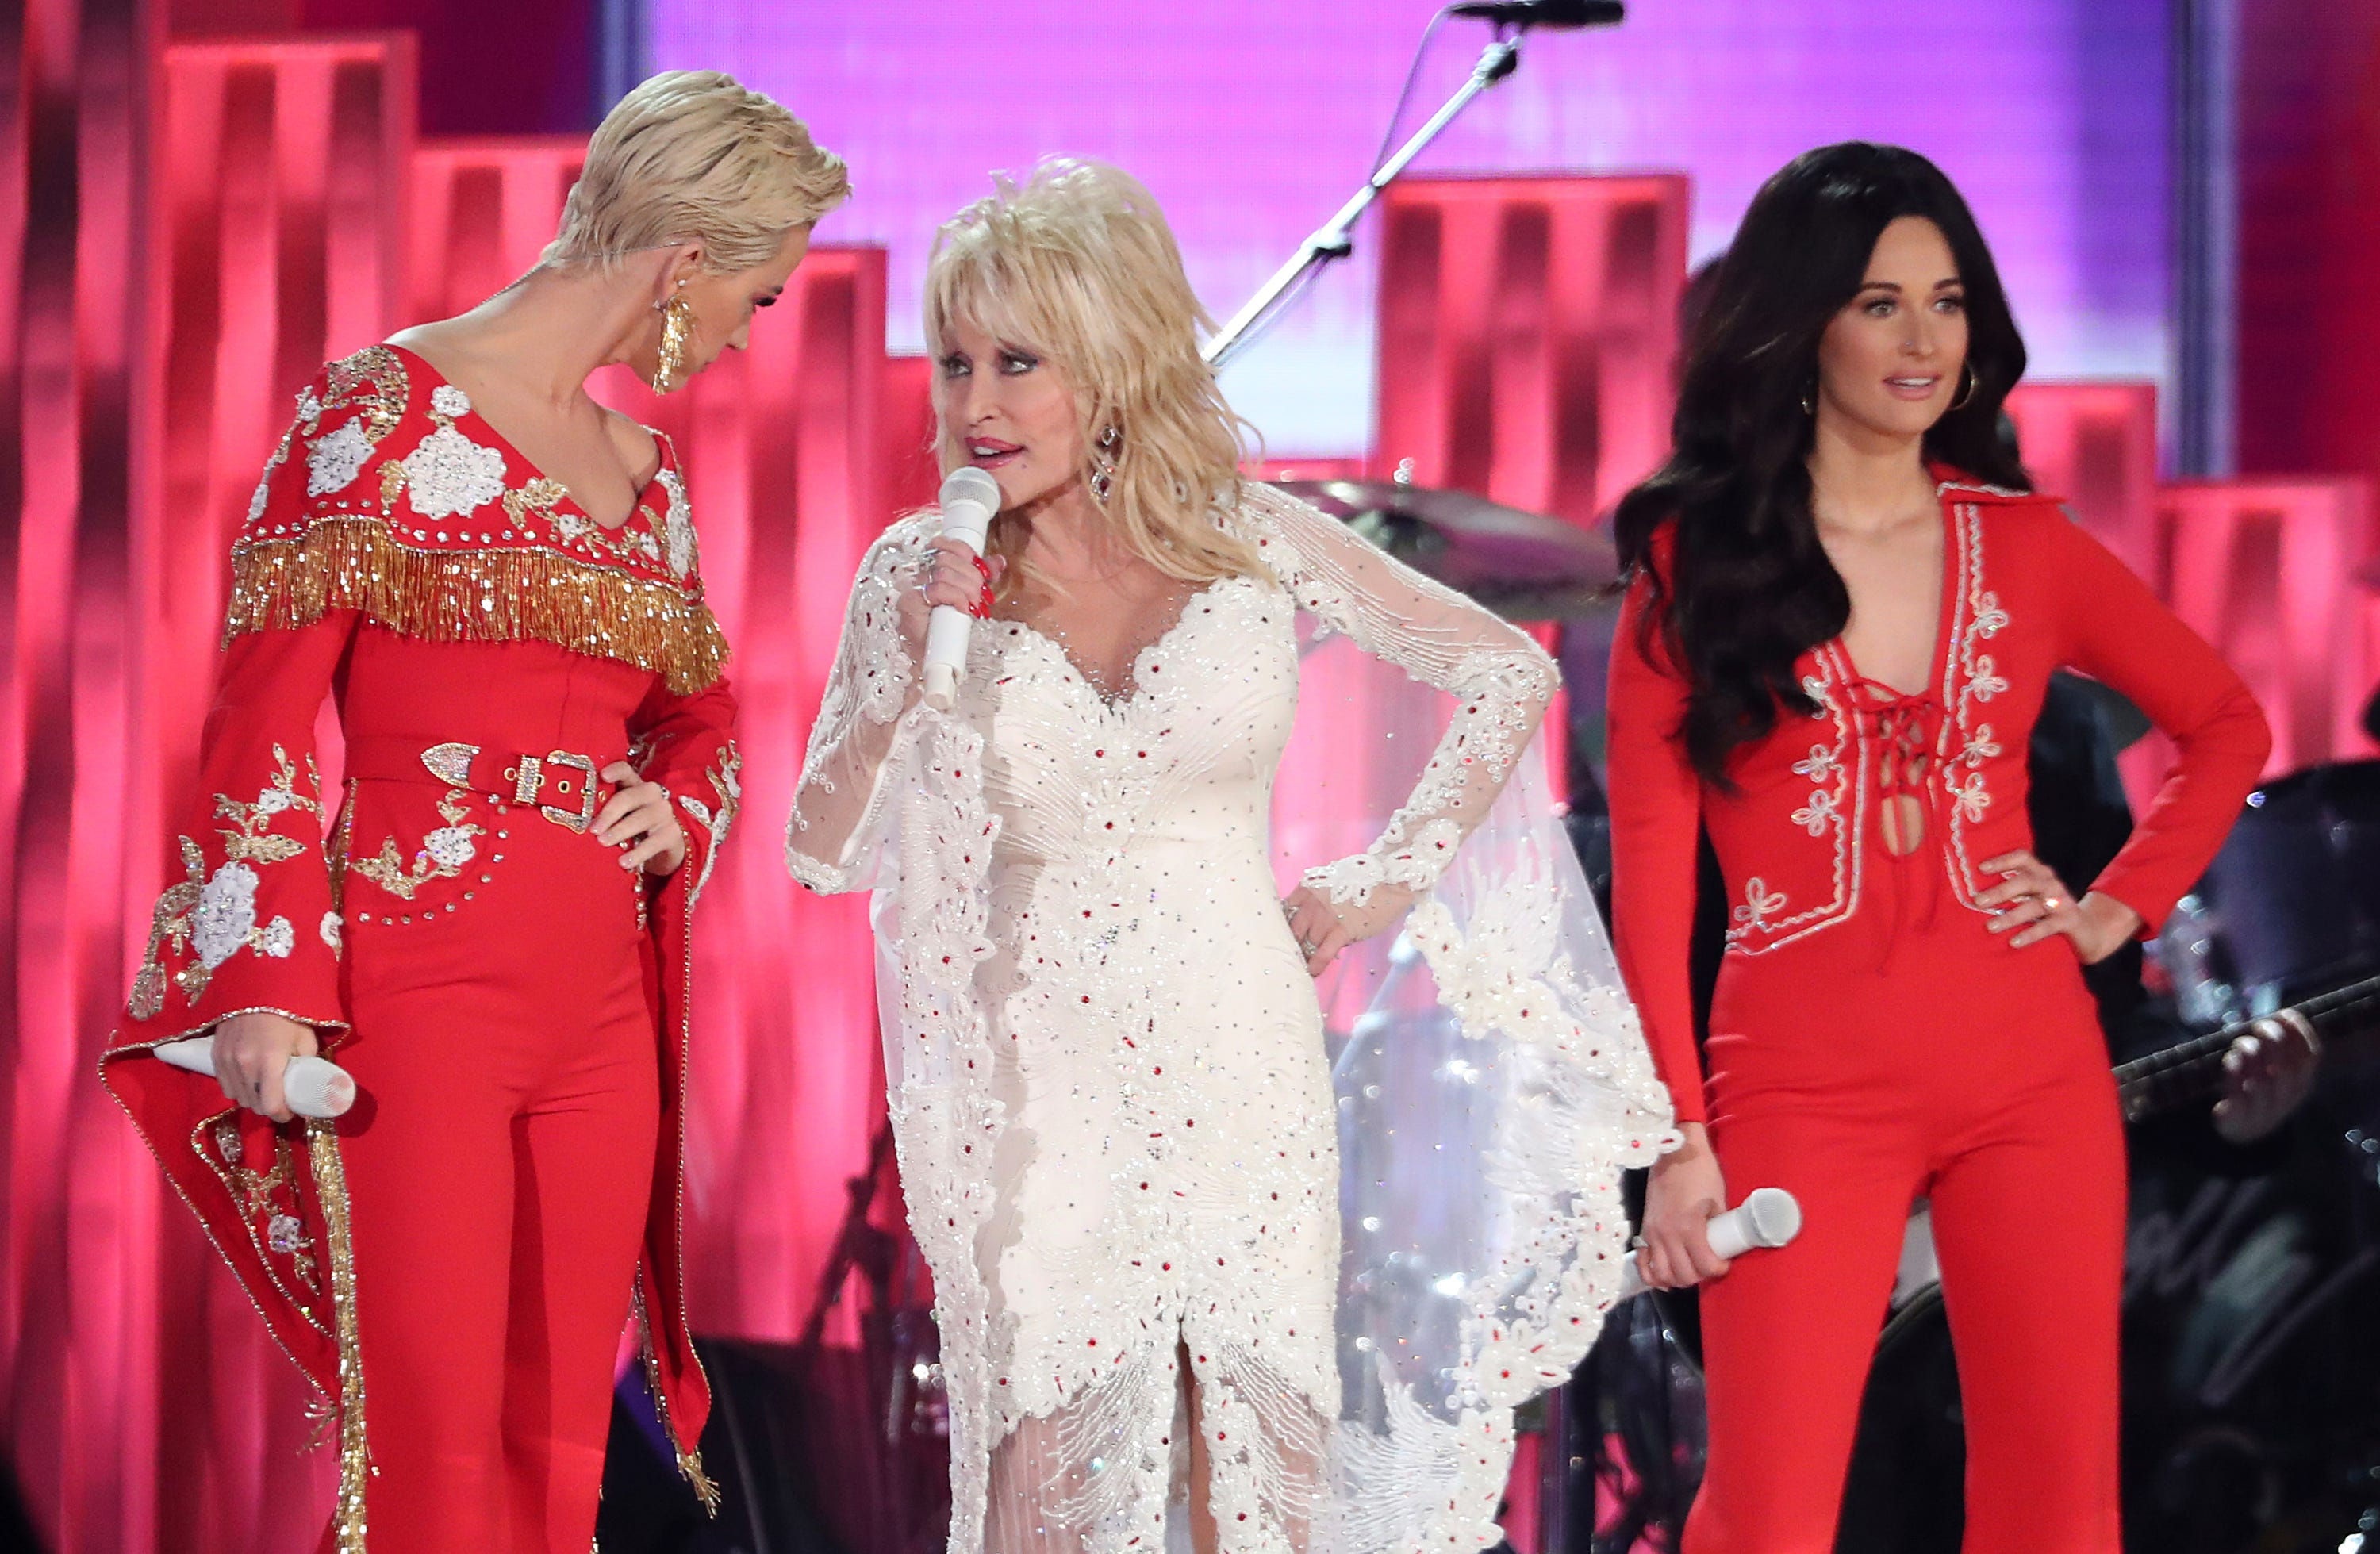 Katy Perry Miley Cyrus And More Join Dolly Parton For Grammys Salute